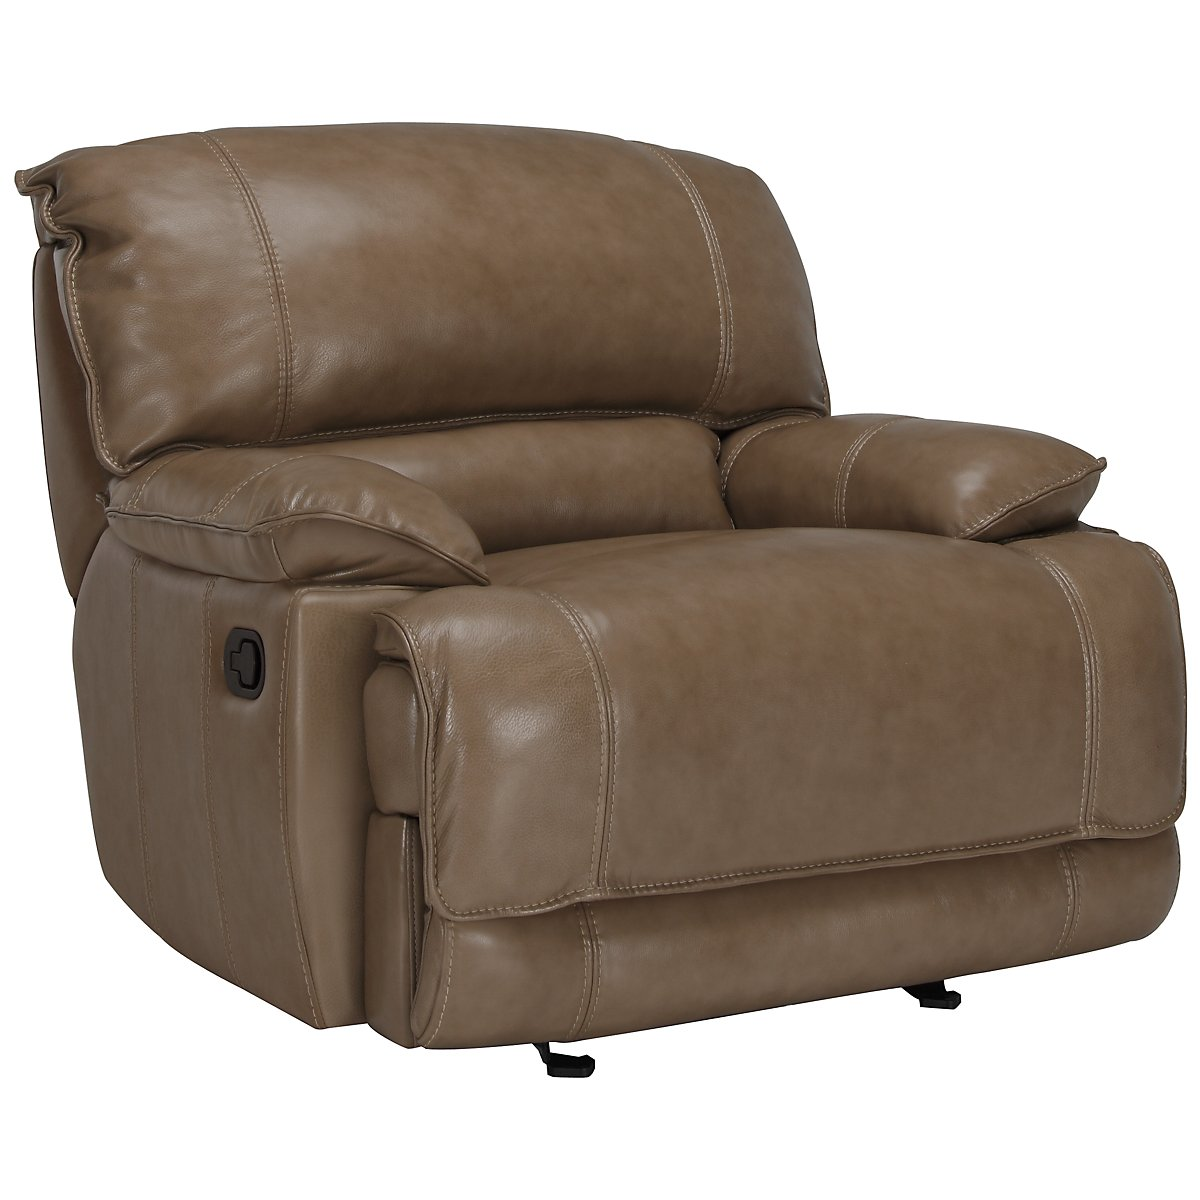 Benson Dark Taupe Leather & Vinyl Lthr/vinyl Glider Recliner